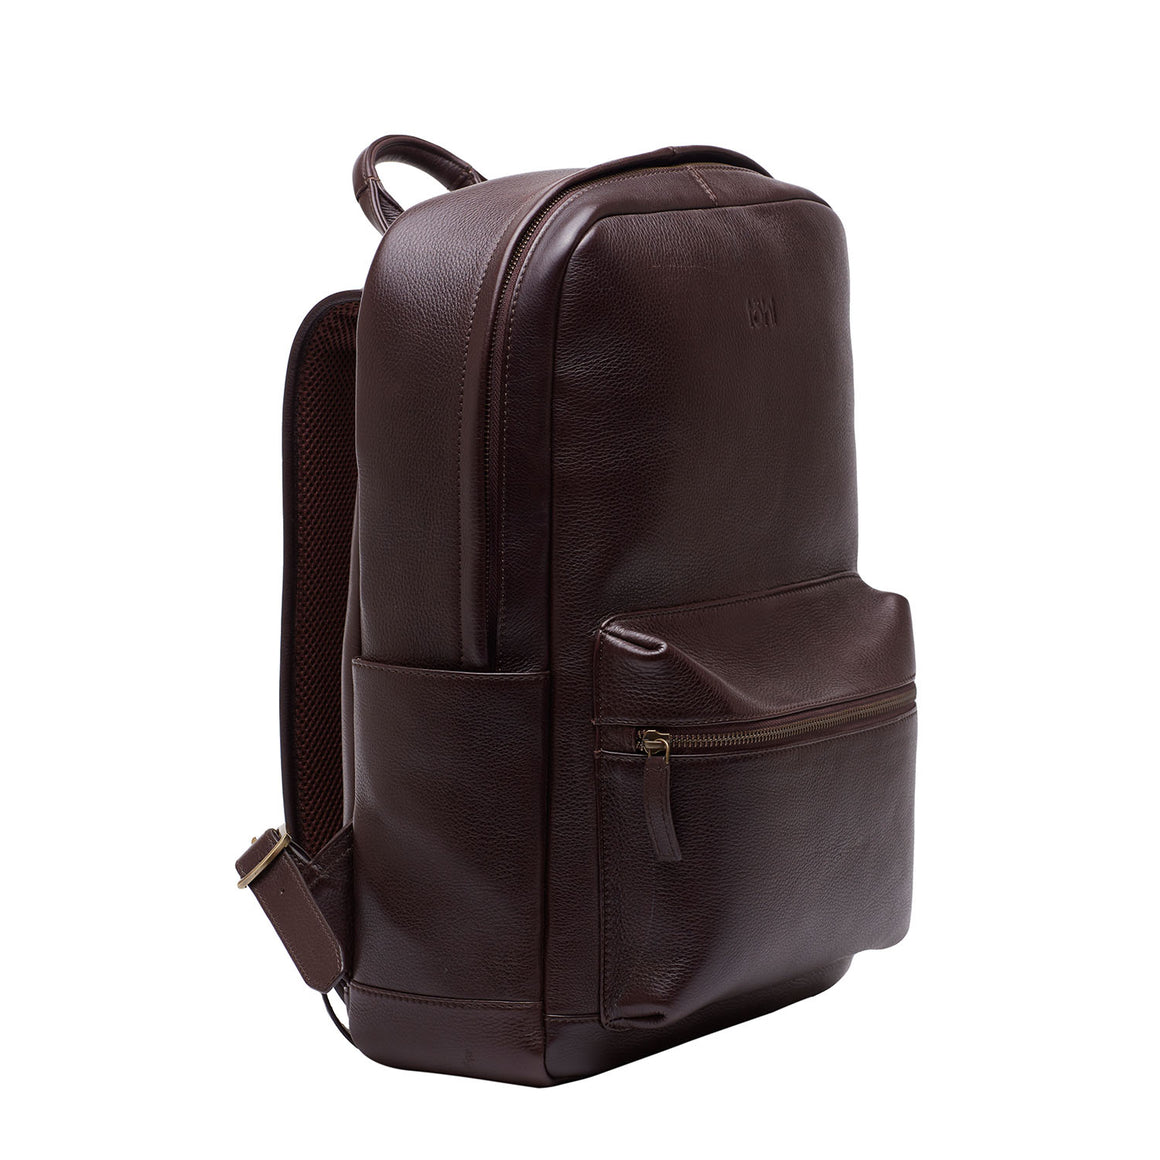 BP 0007 - TOHL ASTORE MEN'S BACKPACK - T MORO